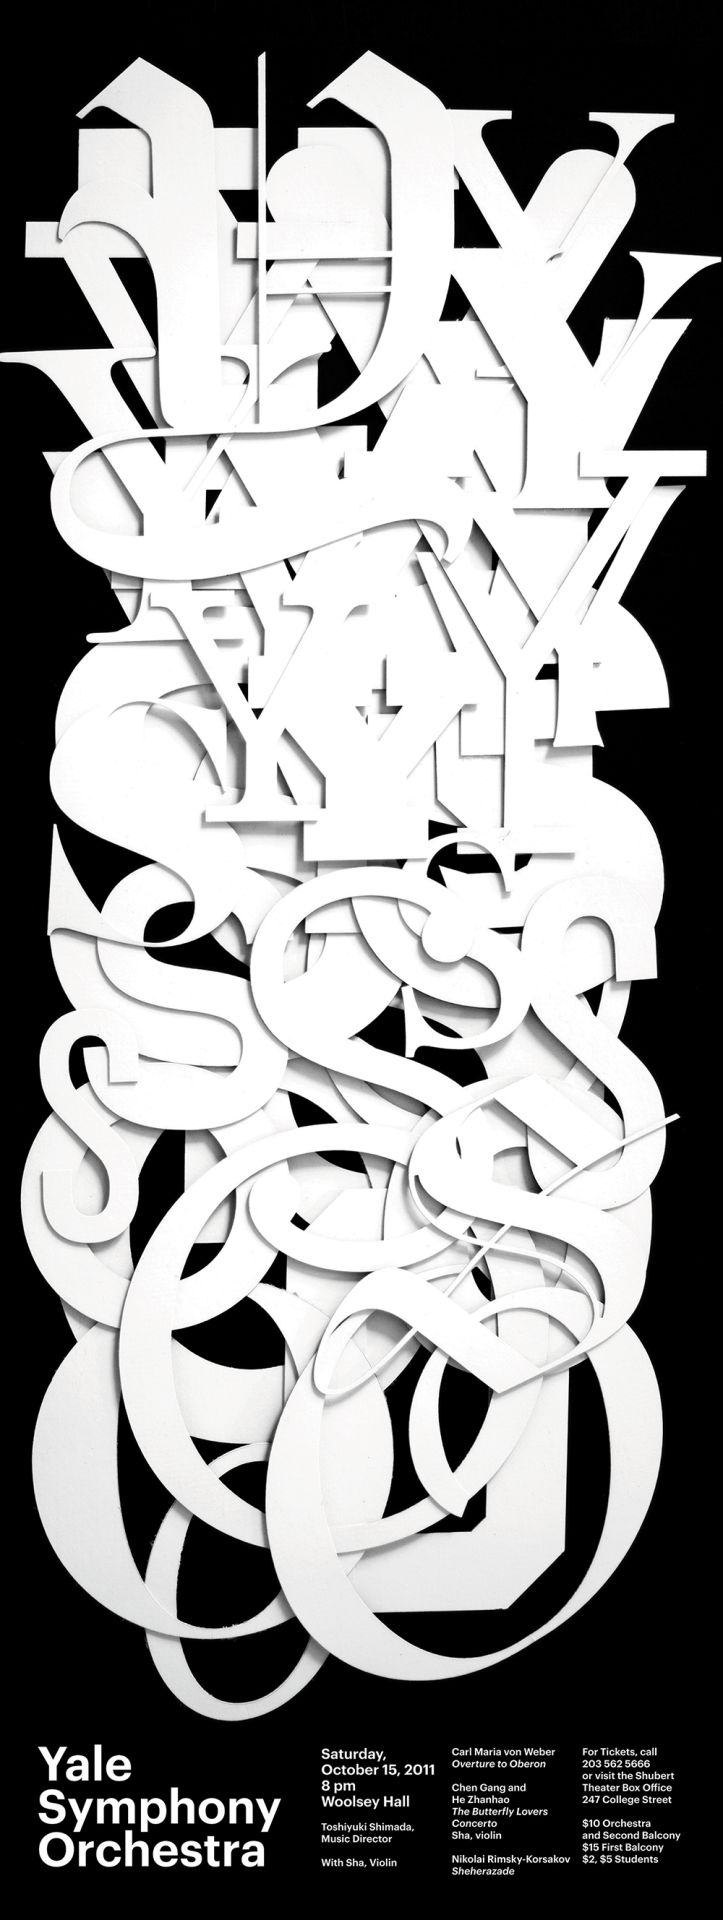 Poster design typography - 5951 Best Typography Images On Pinterest Typography Letters Lettering And Graphic Design Typography